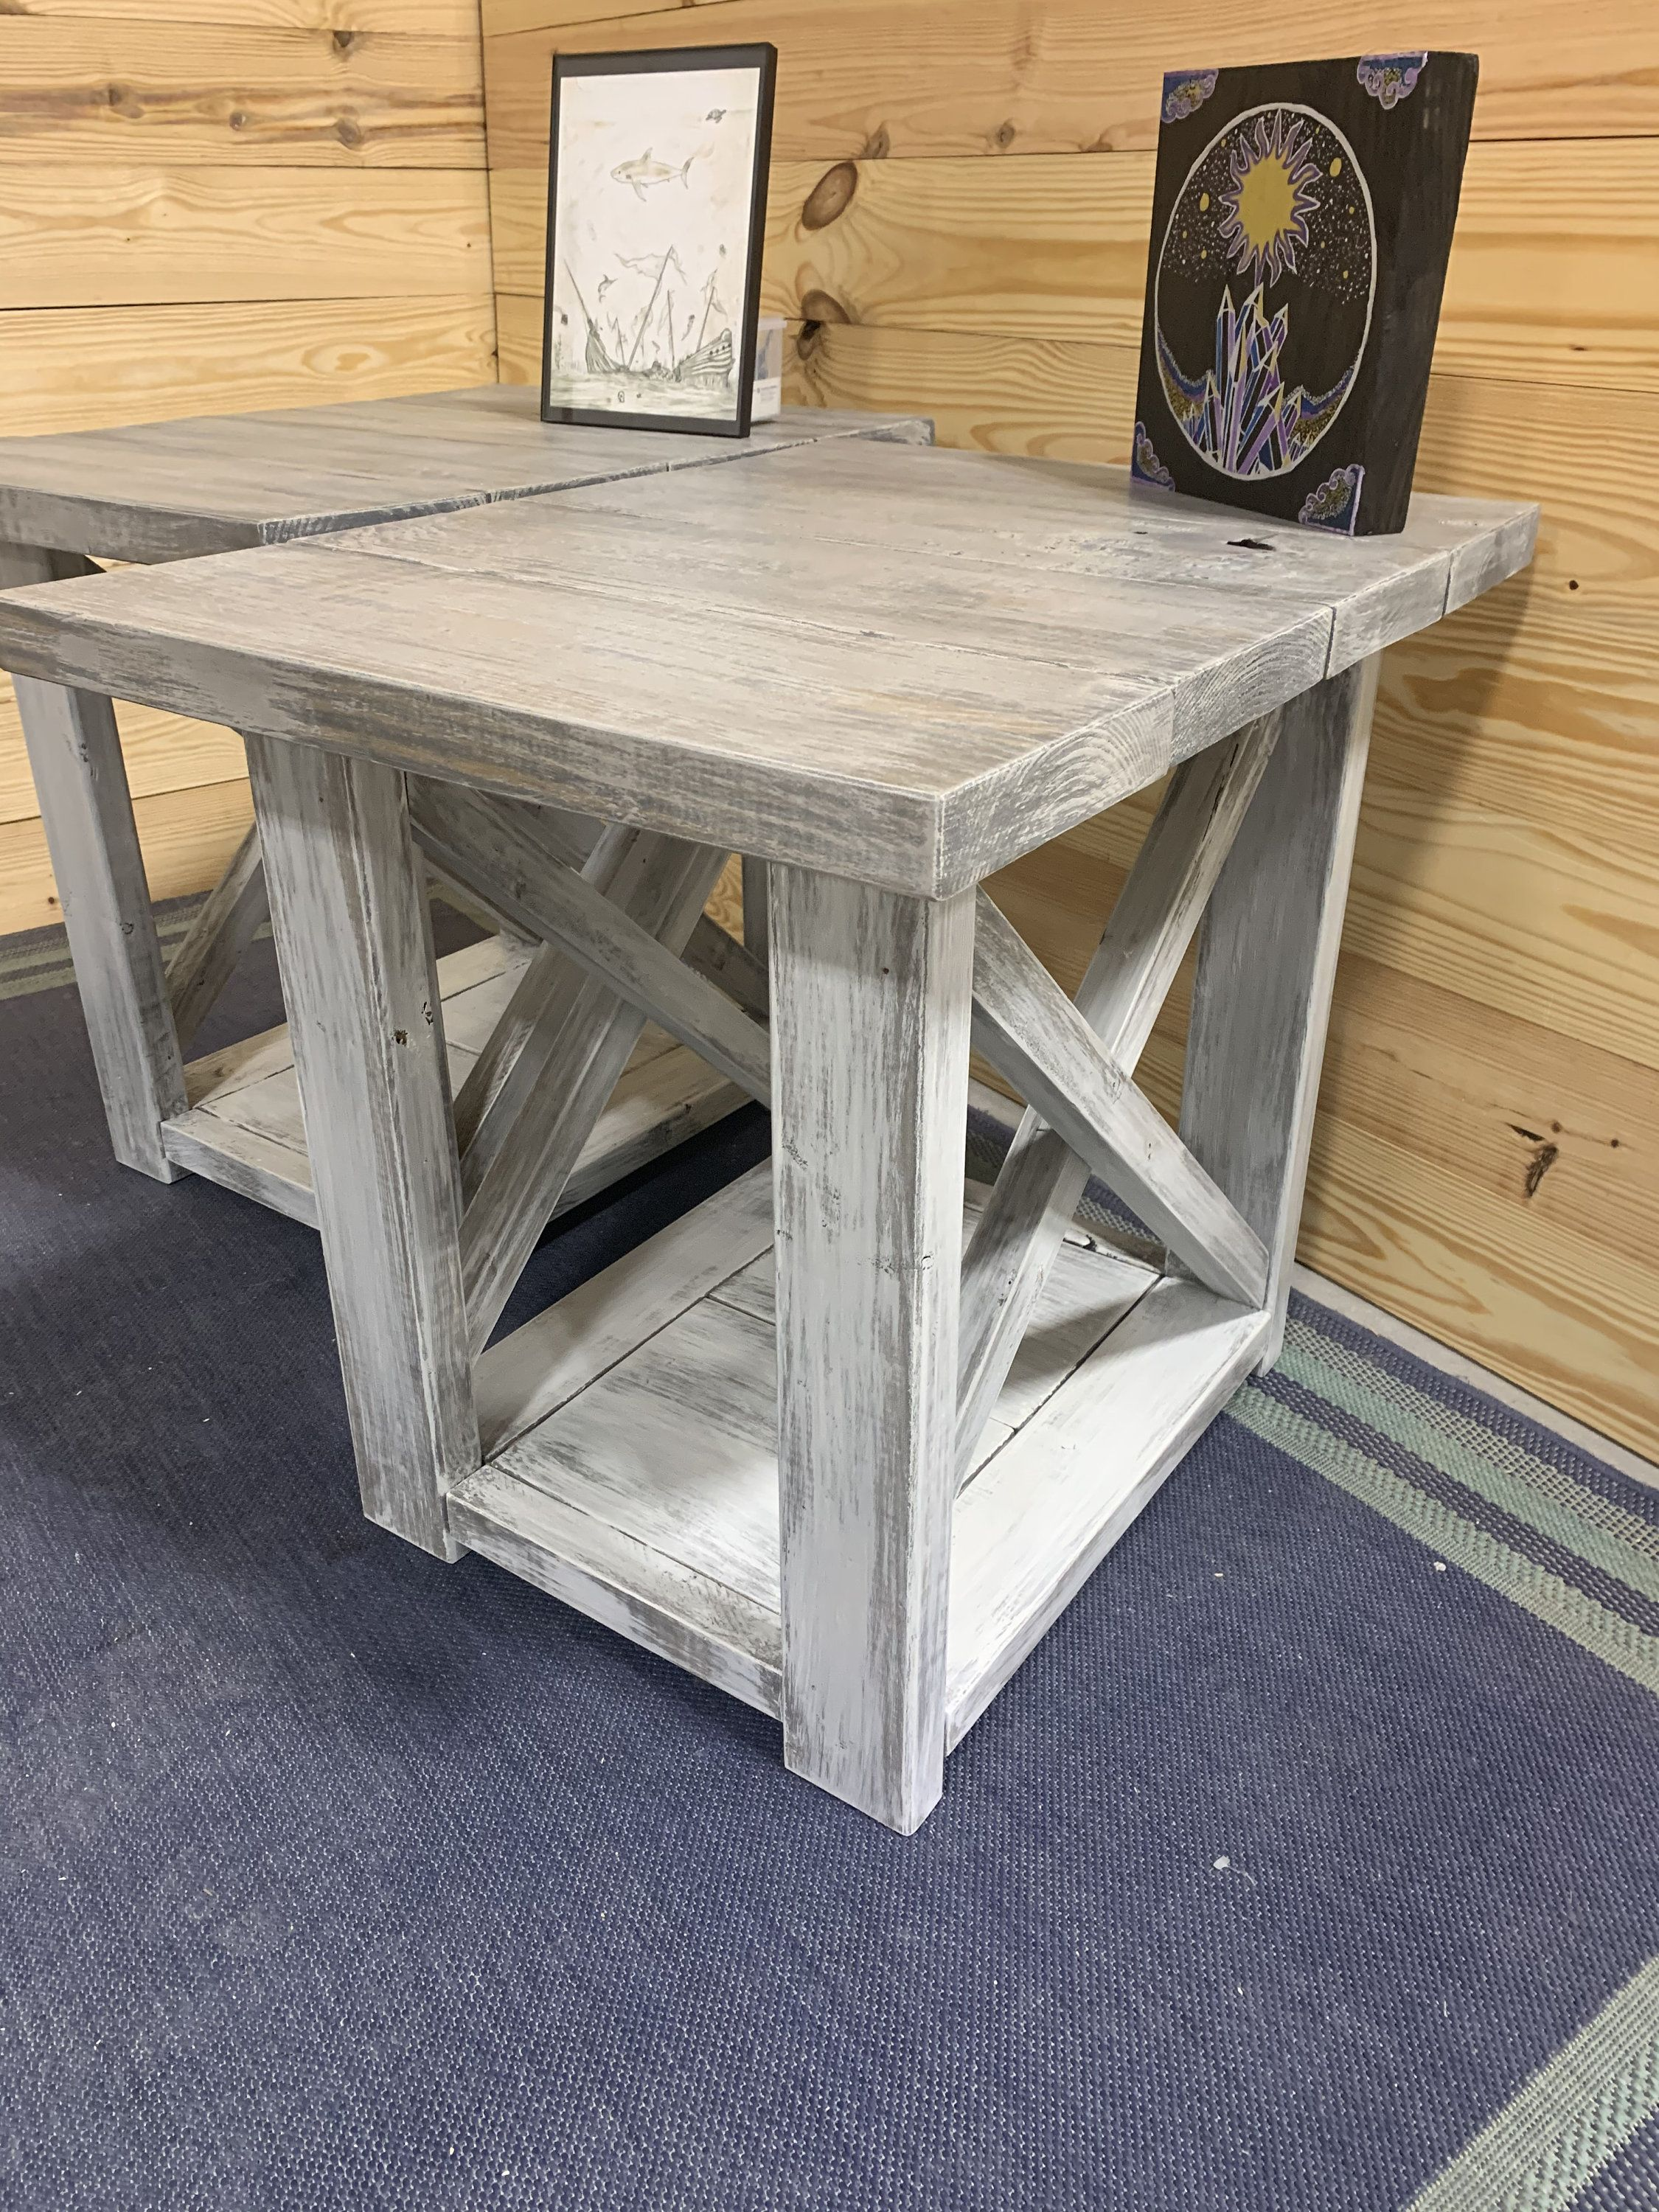 Large Rustic Farmhouse Style End Table Set Wooden Side Tables With A White Wash Top And Whit Distressed Base Living Room Set With Storage Wooden Side Table Rustic Farmhouse Style Living